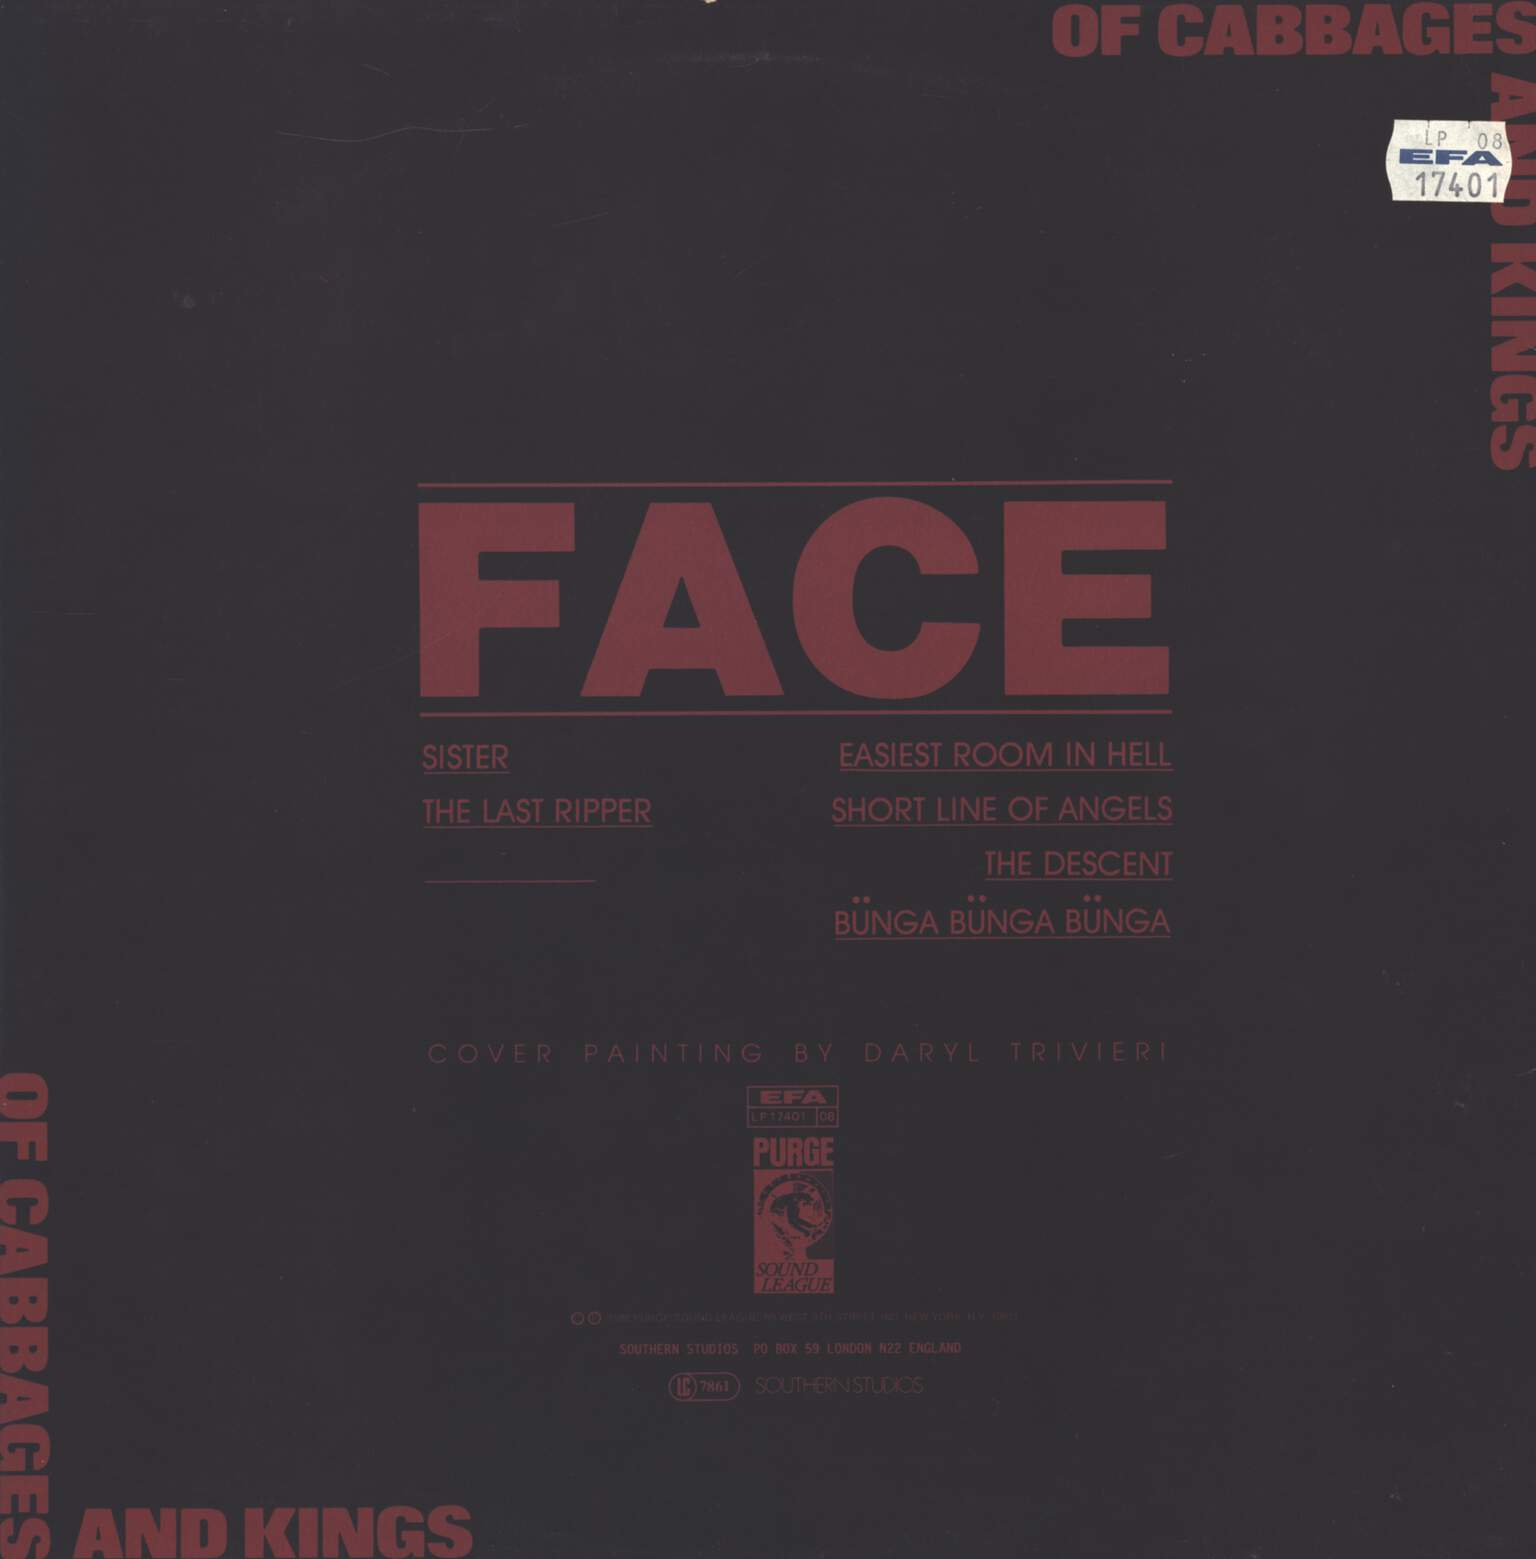 Of Cabbages and Kings: Face, LP (Vinyl)